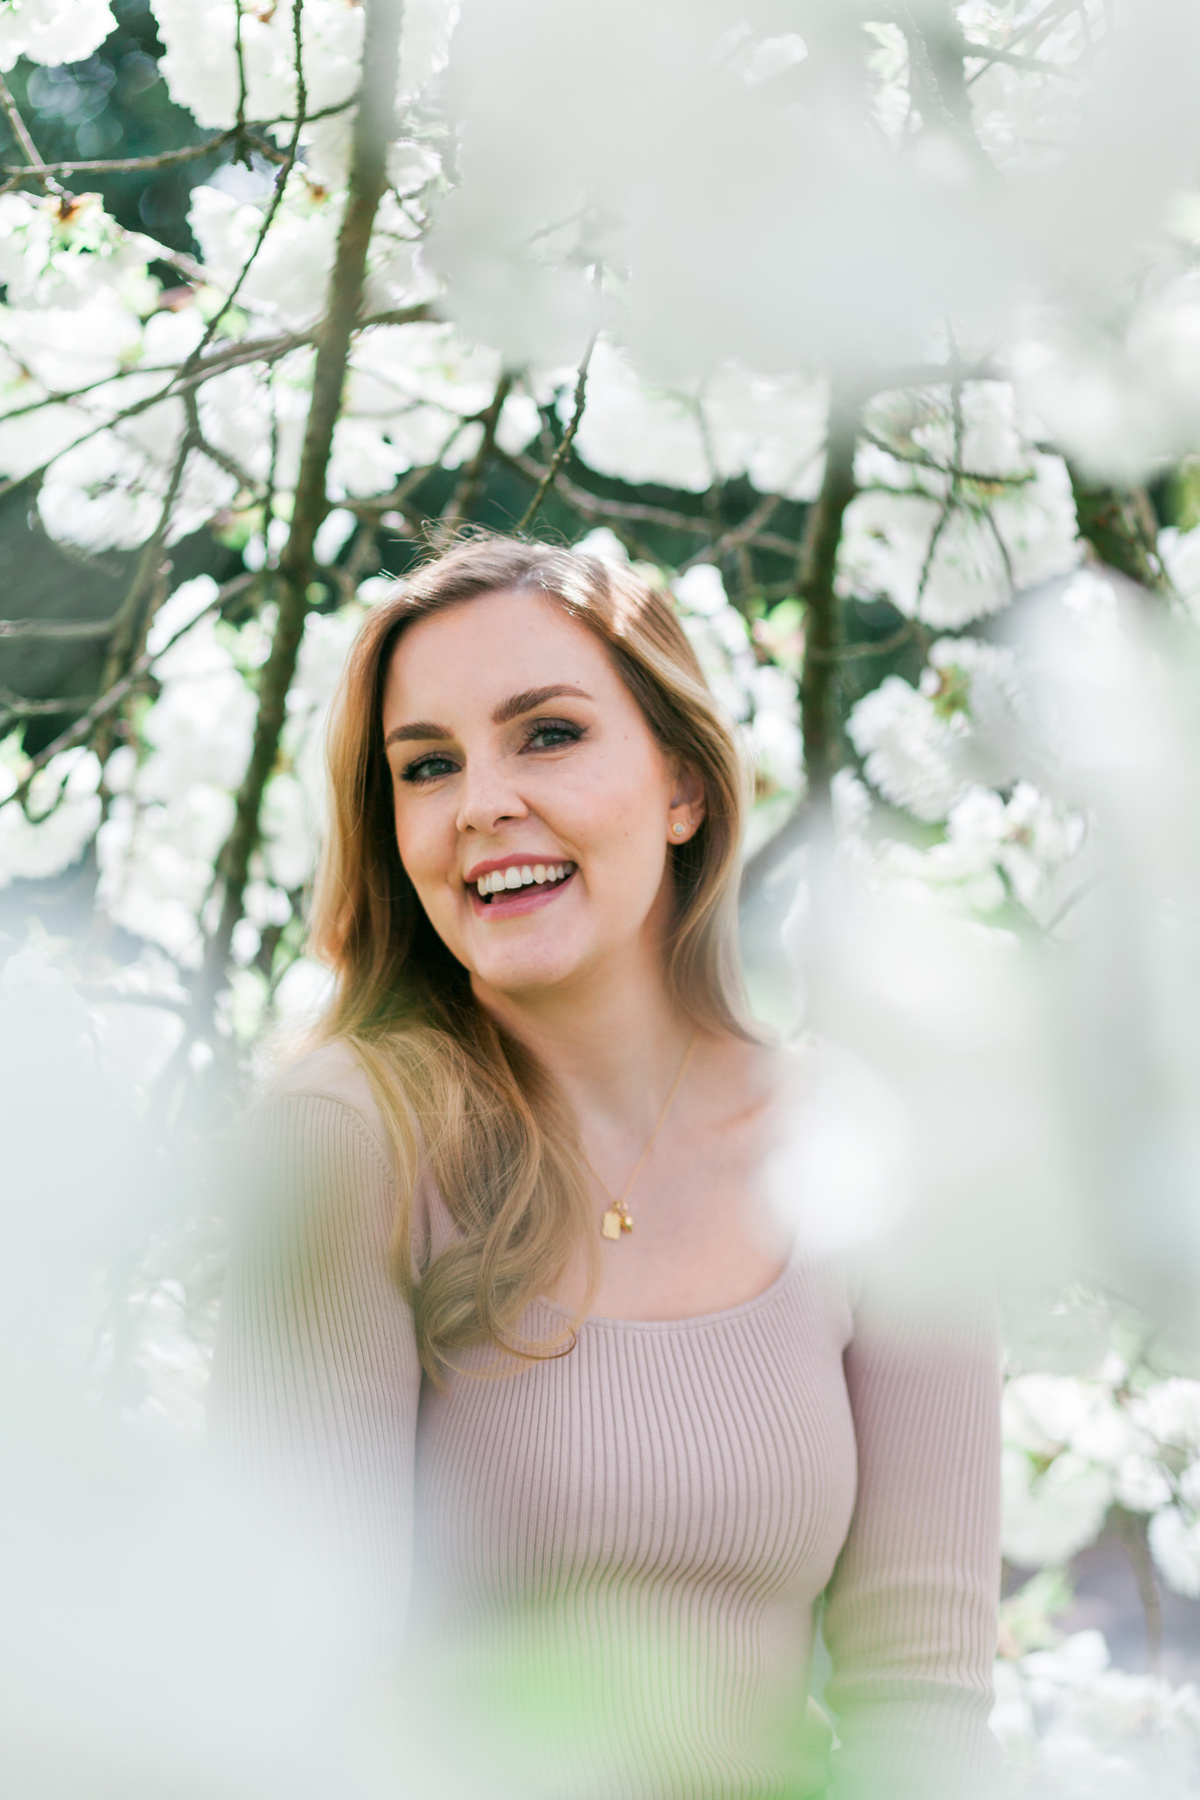 Branding headshot photo by Emma Jackson Photography of a woman in a neutral top standing amongst white blossom smiling